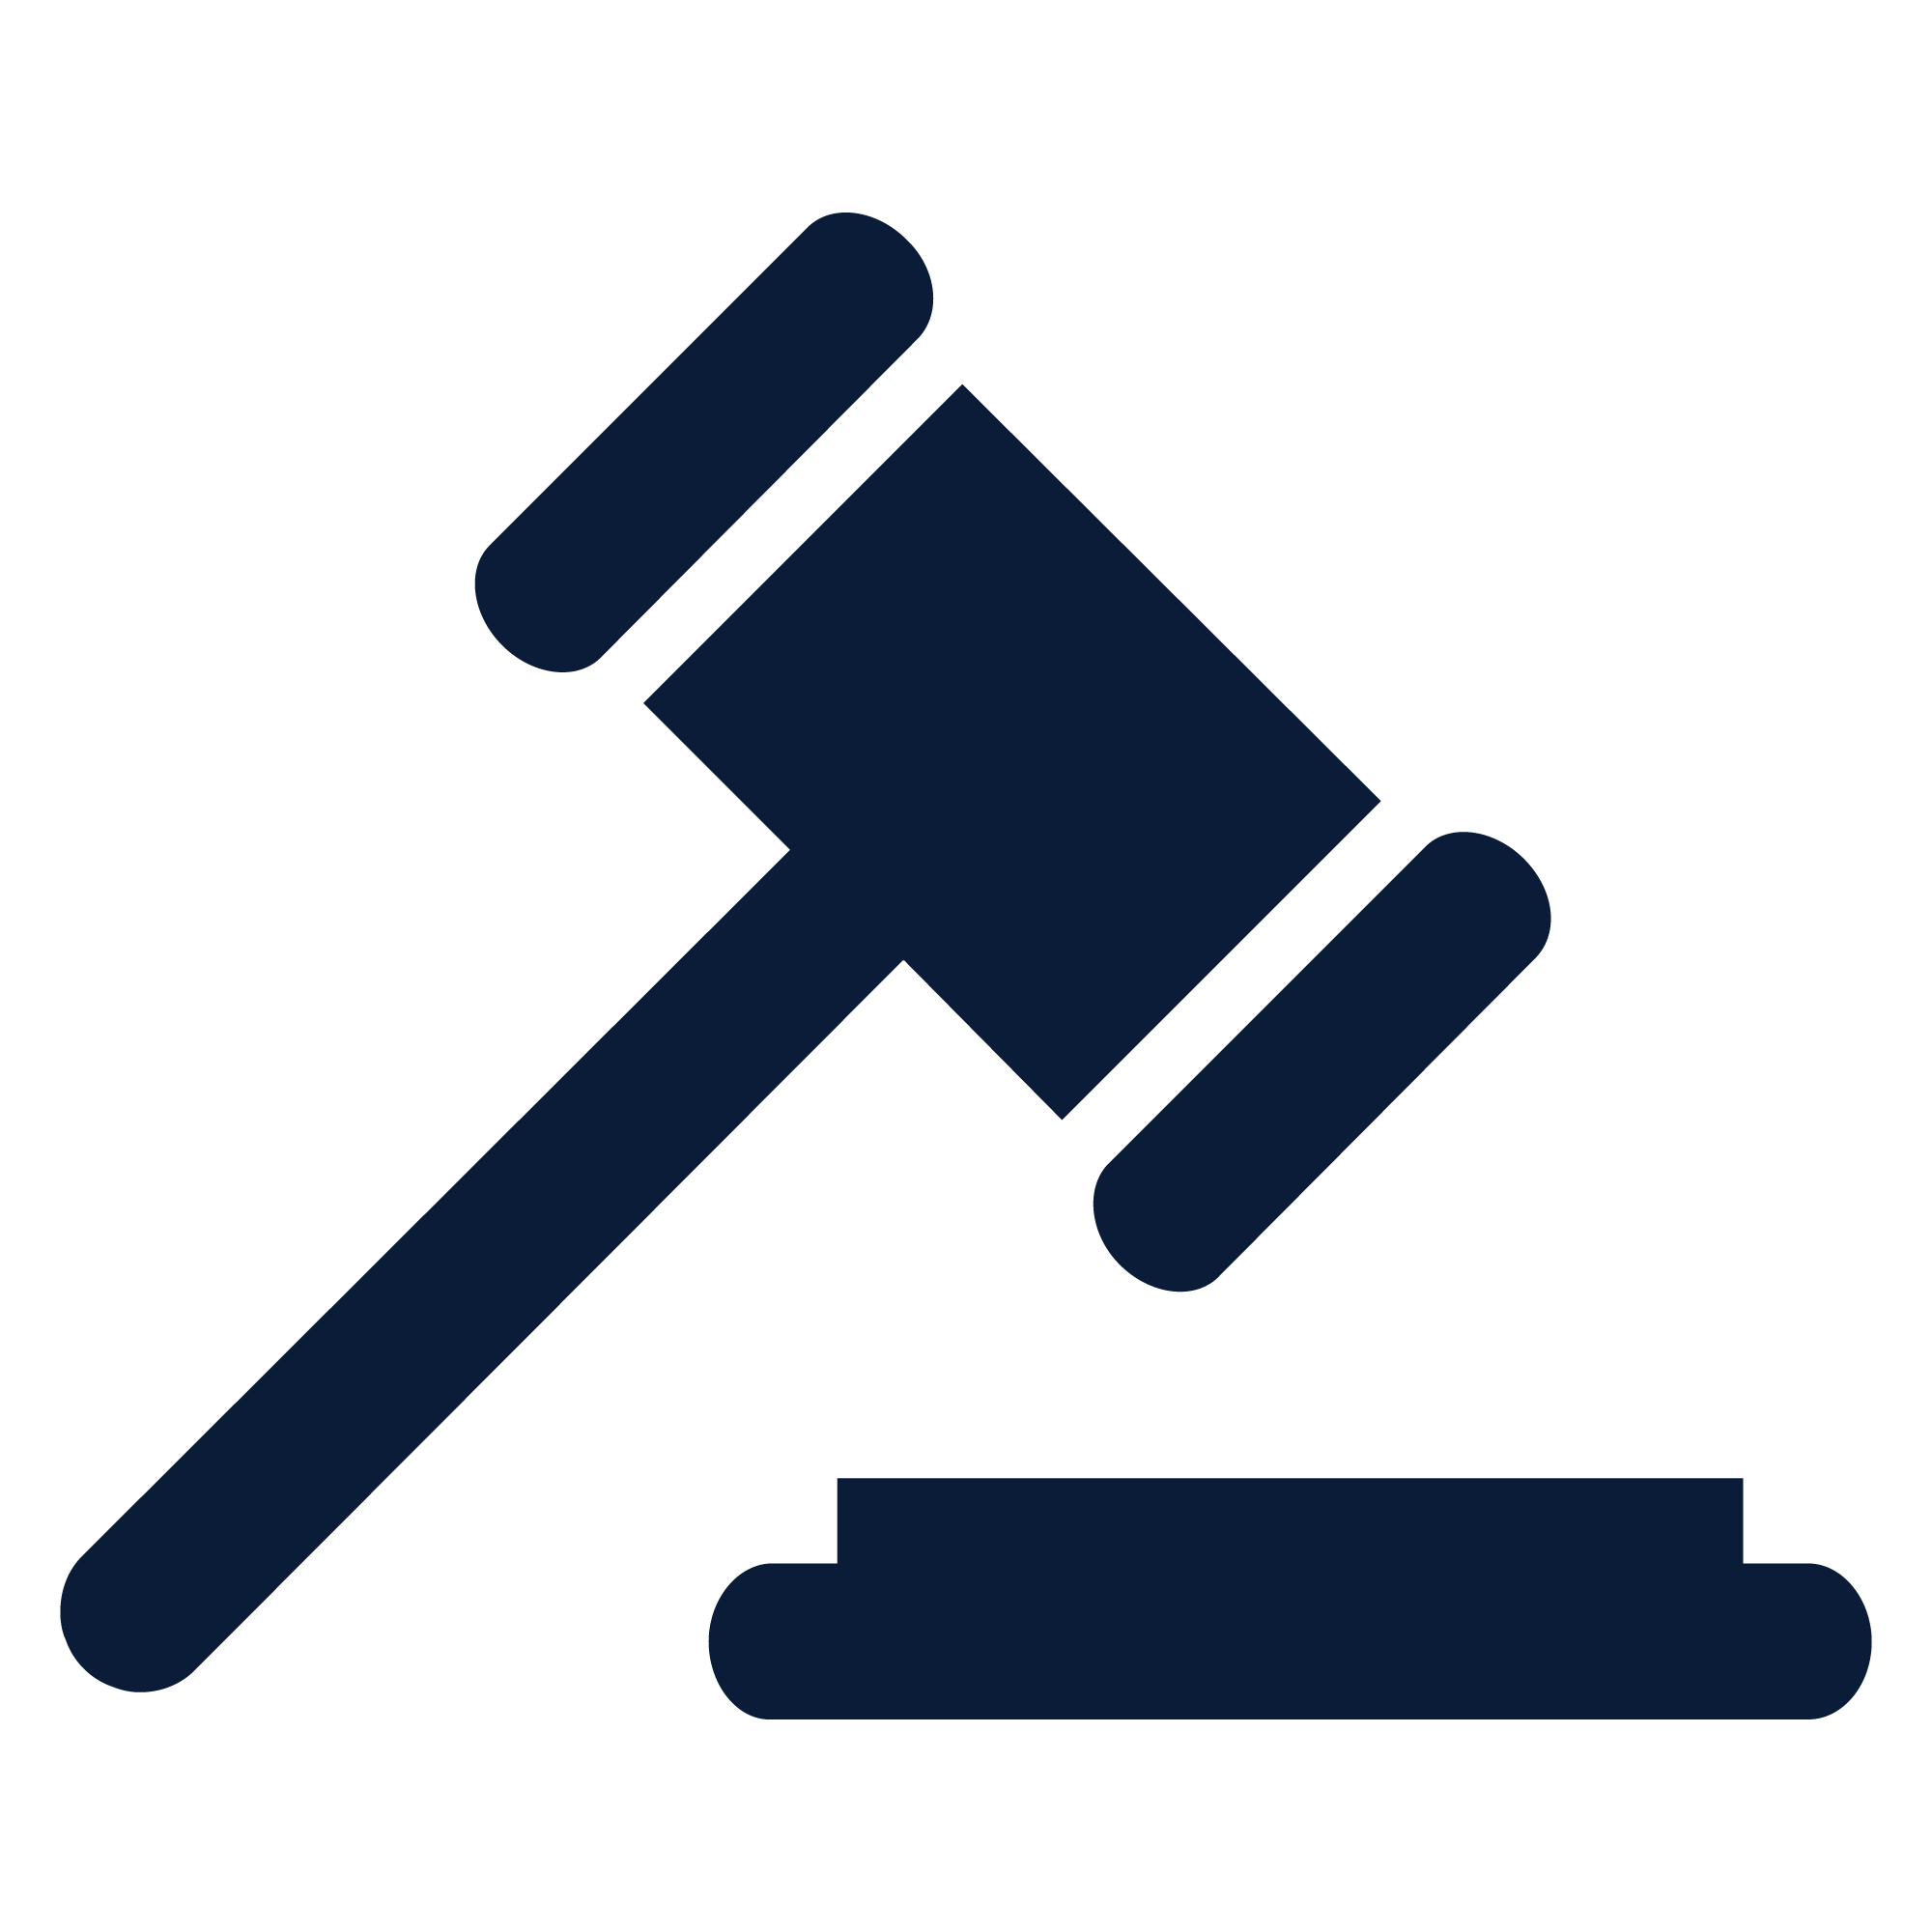 royalty free stock Constitutionalism free on dumielauxepices. Lawyer clipart gavel.